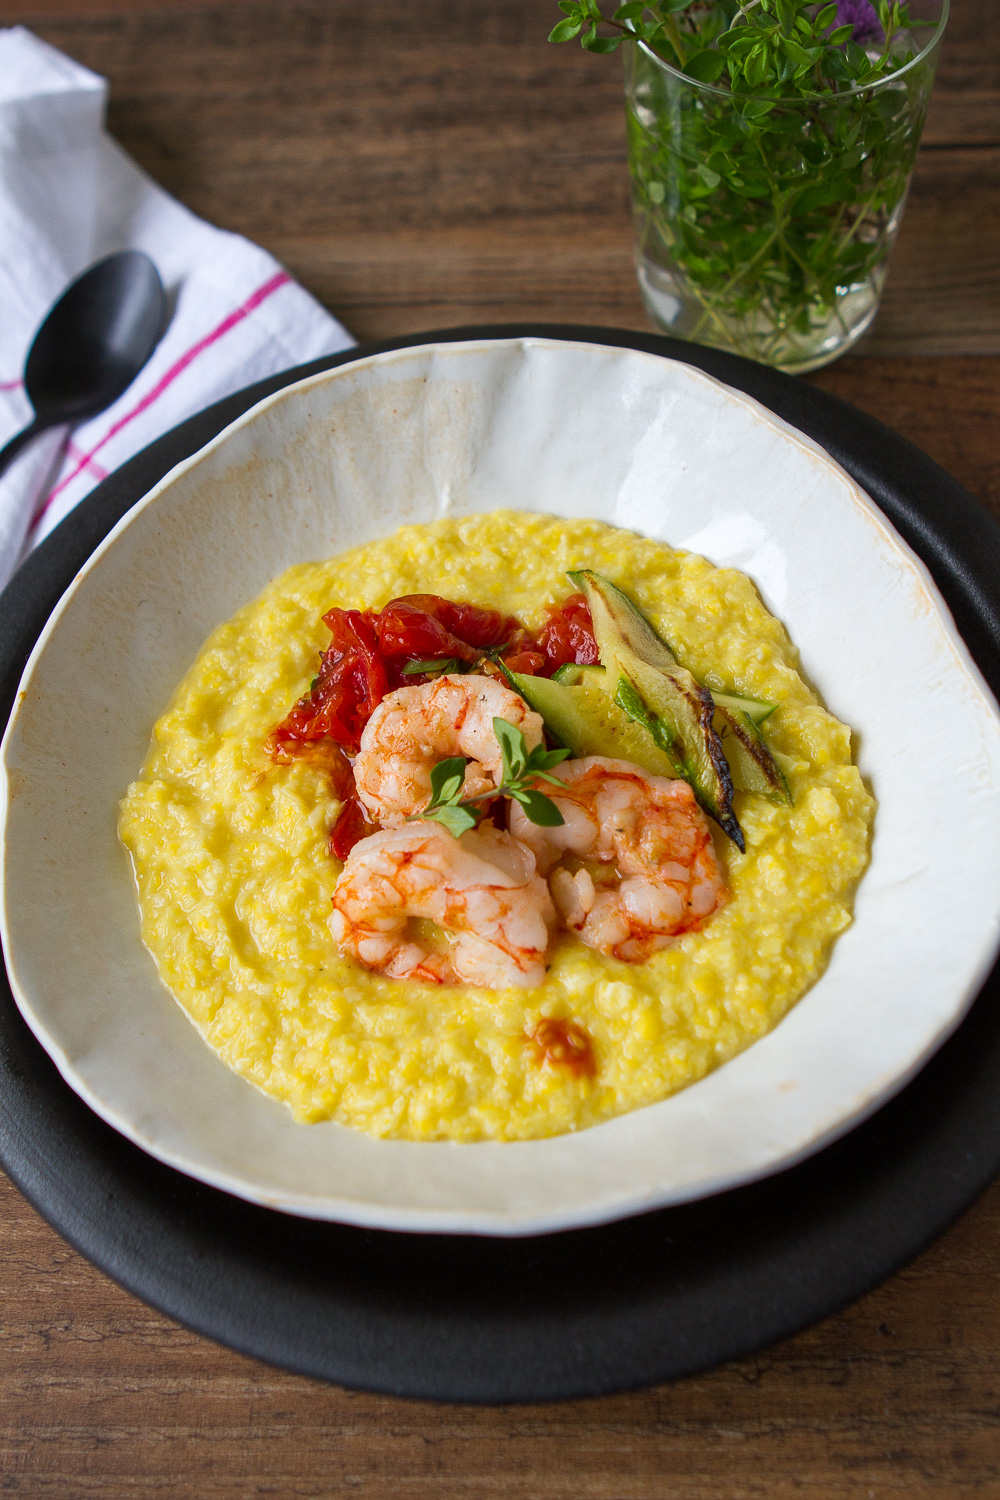 FRESH CORN POLENTA WITH GRILLED SHRIMP, ZUCCHINI, AND ROASTED TOMATOES